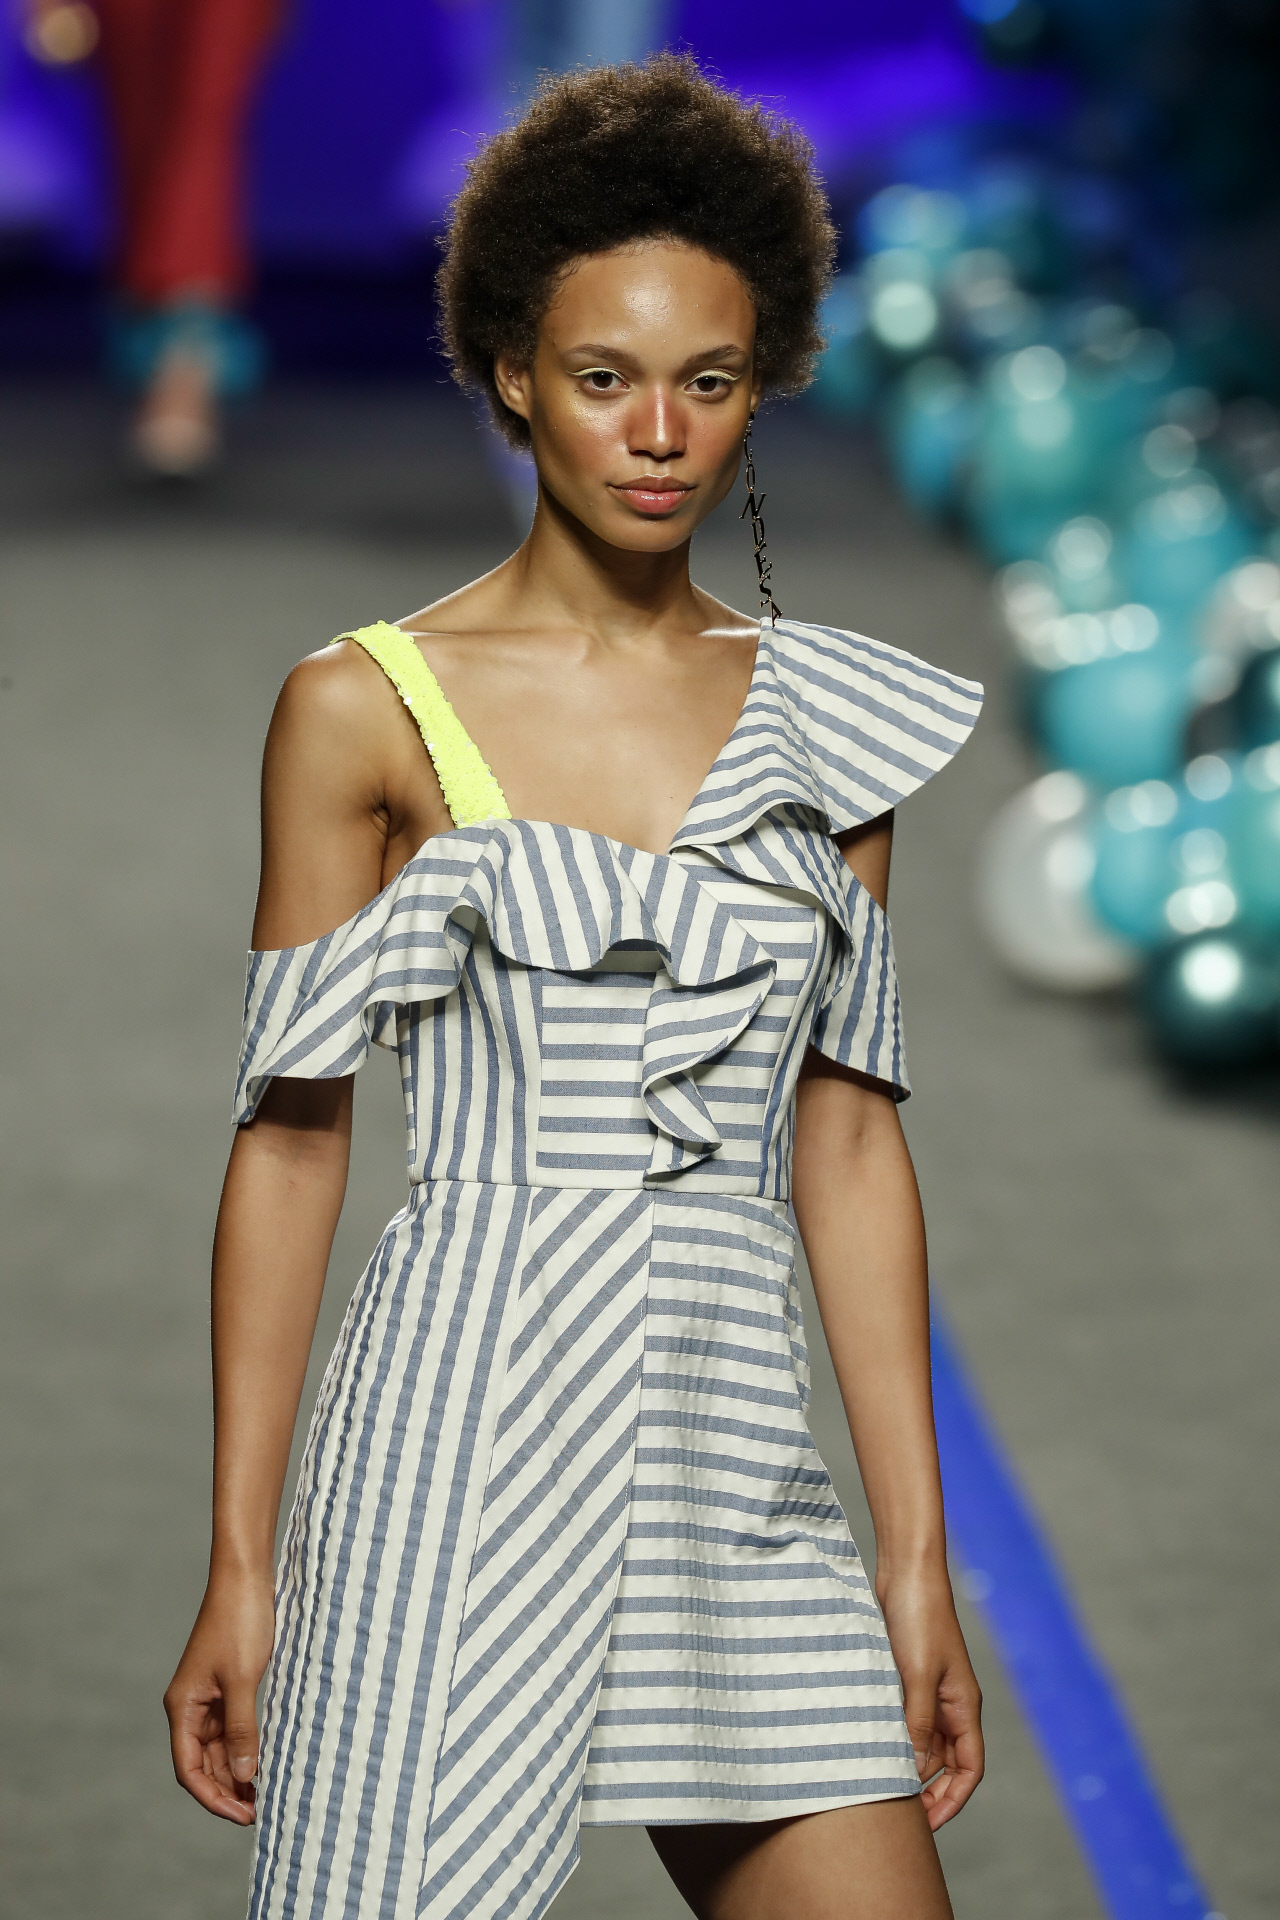 La modelo Afrodita en la Madrid Fashion Week.